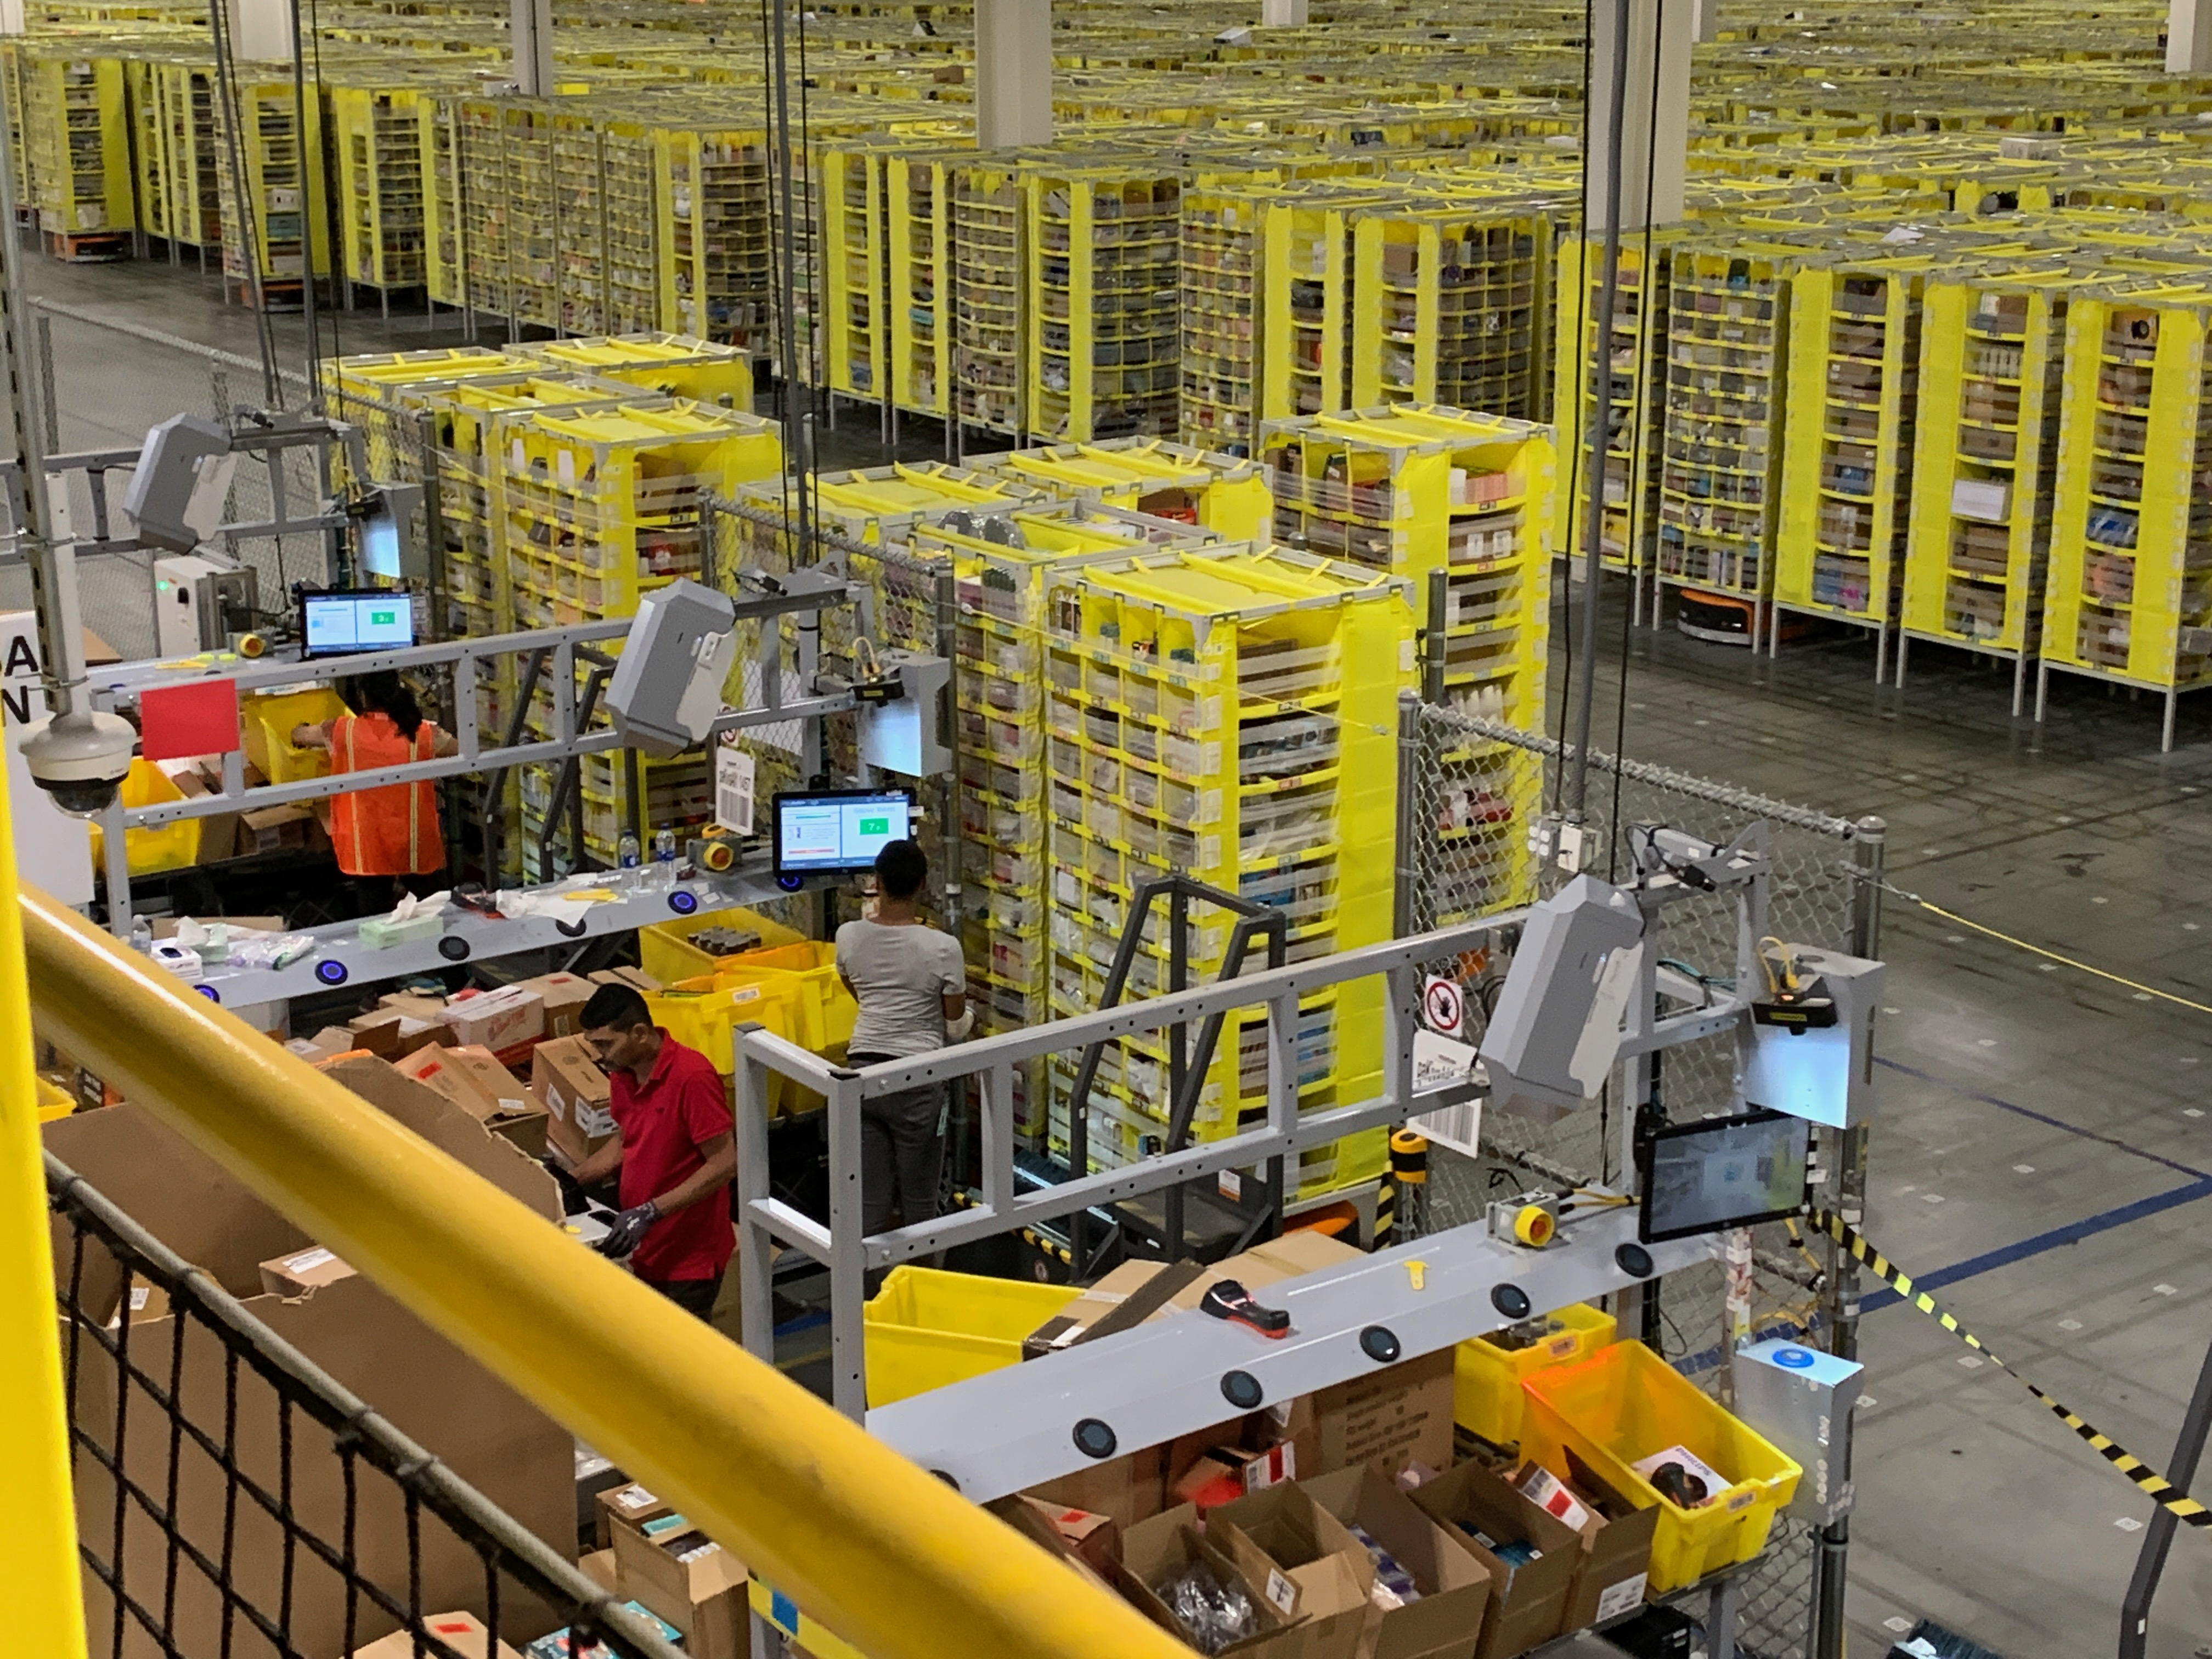 Amazon workers sorting products, randomly, into shelving towers